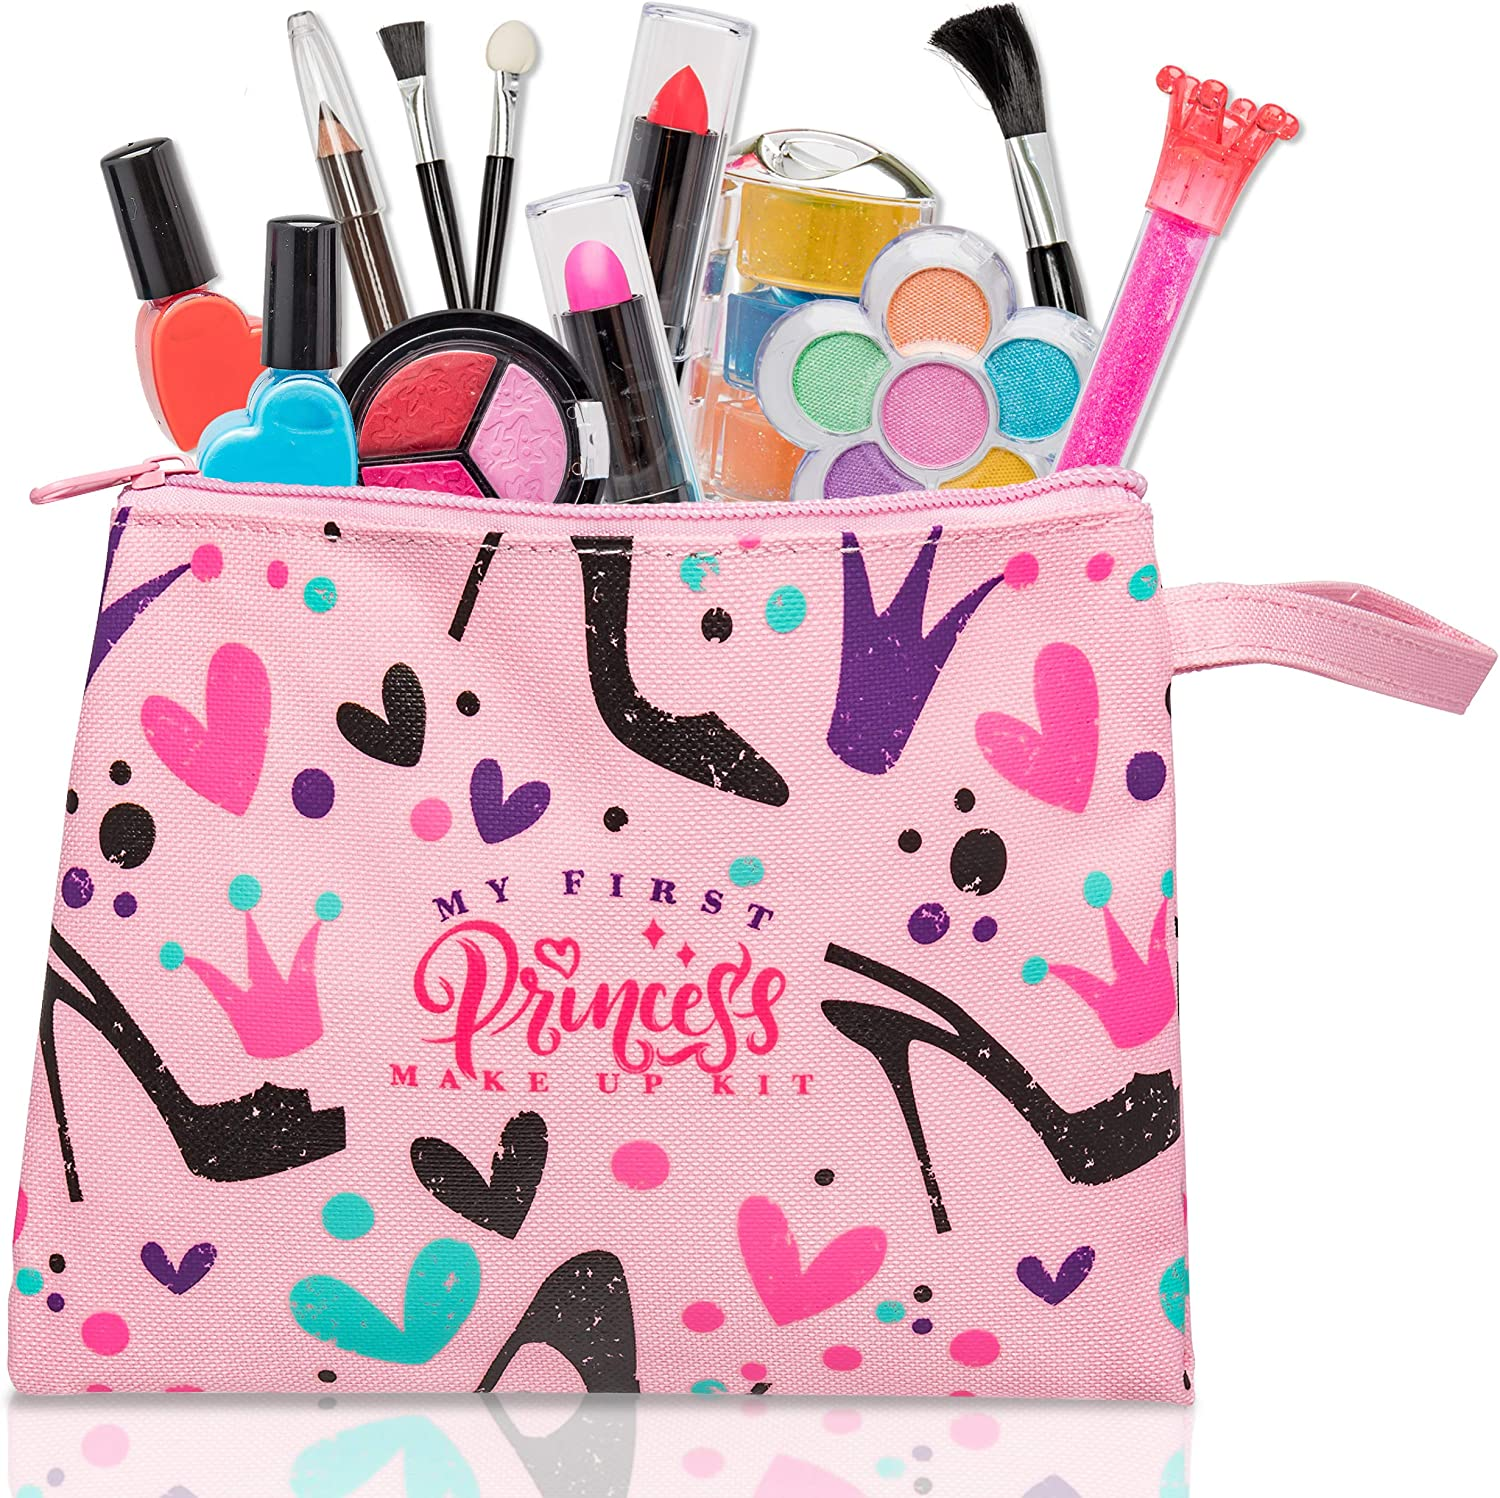 My First Princess Make Up Kit - 12 Pc Kids Makeup Set - Washable Pretend Makeup For Girls